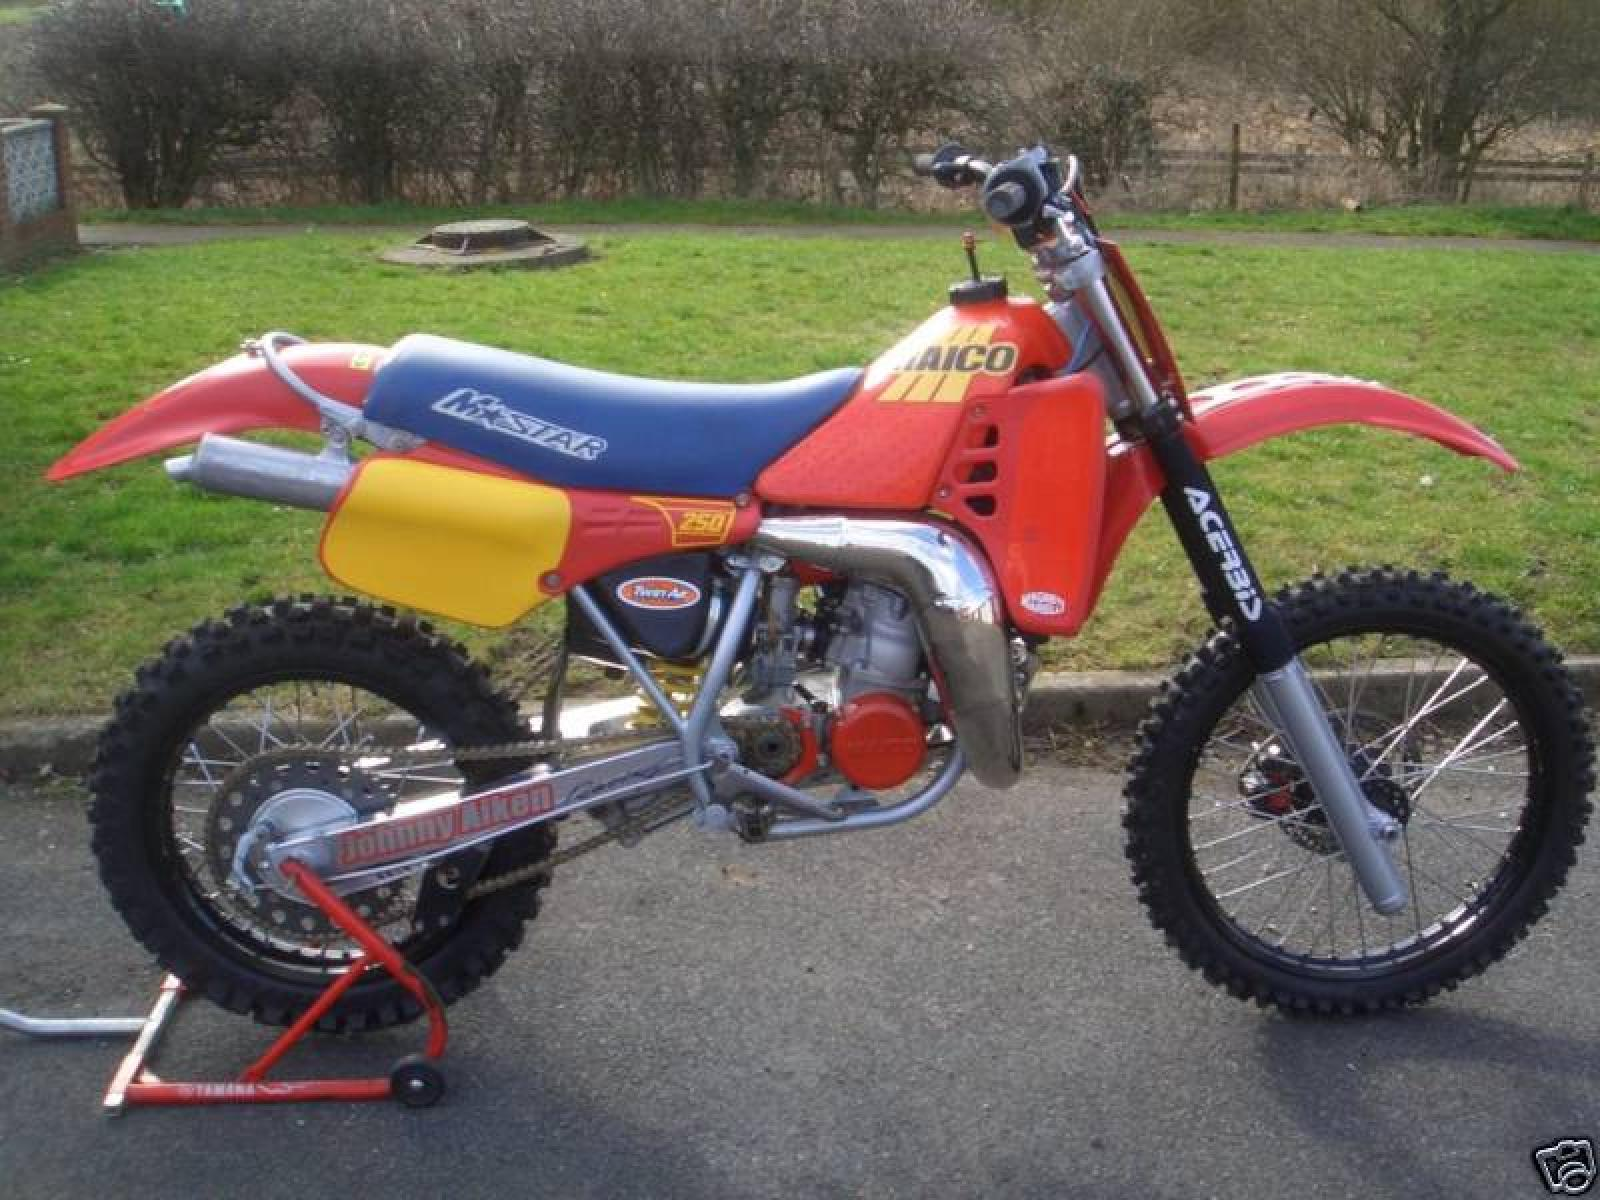 Maico GME 250 1985 images #102225